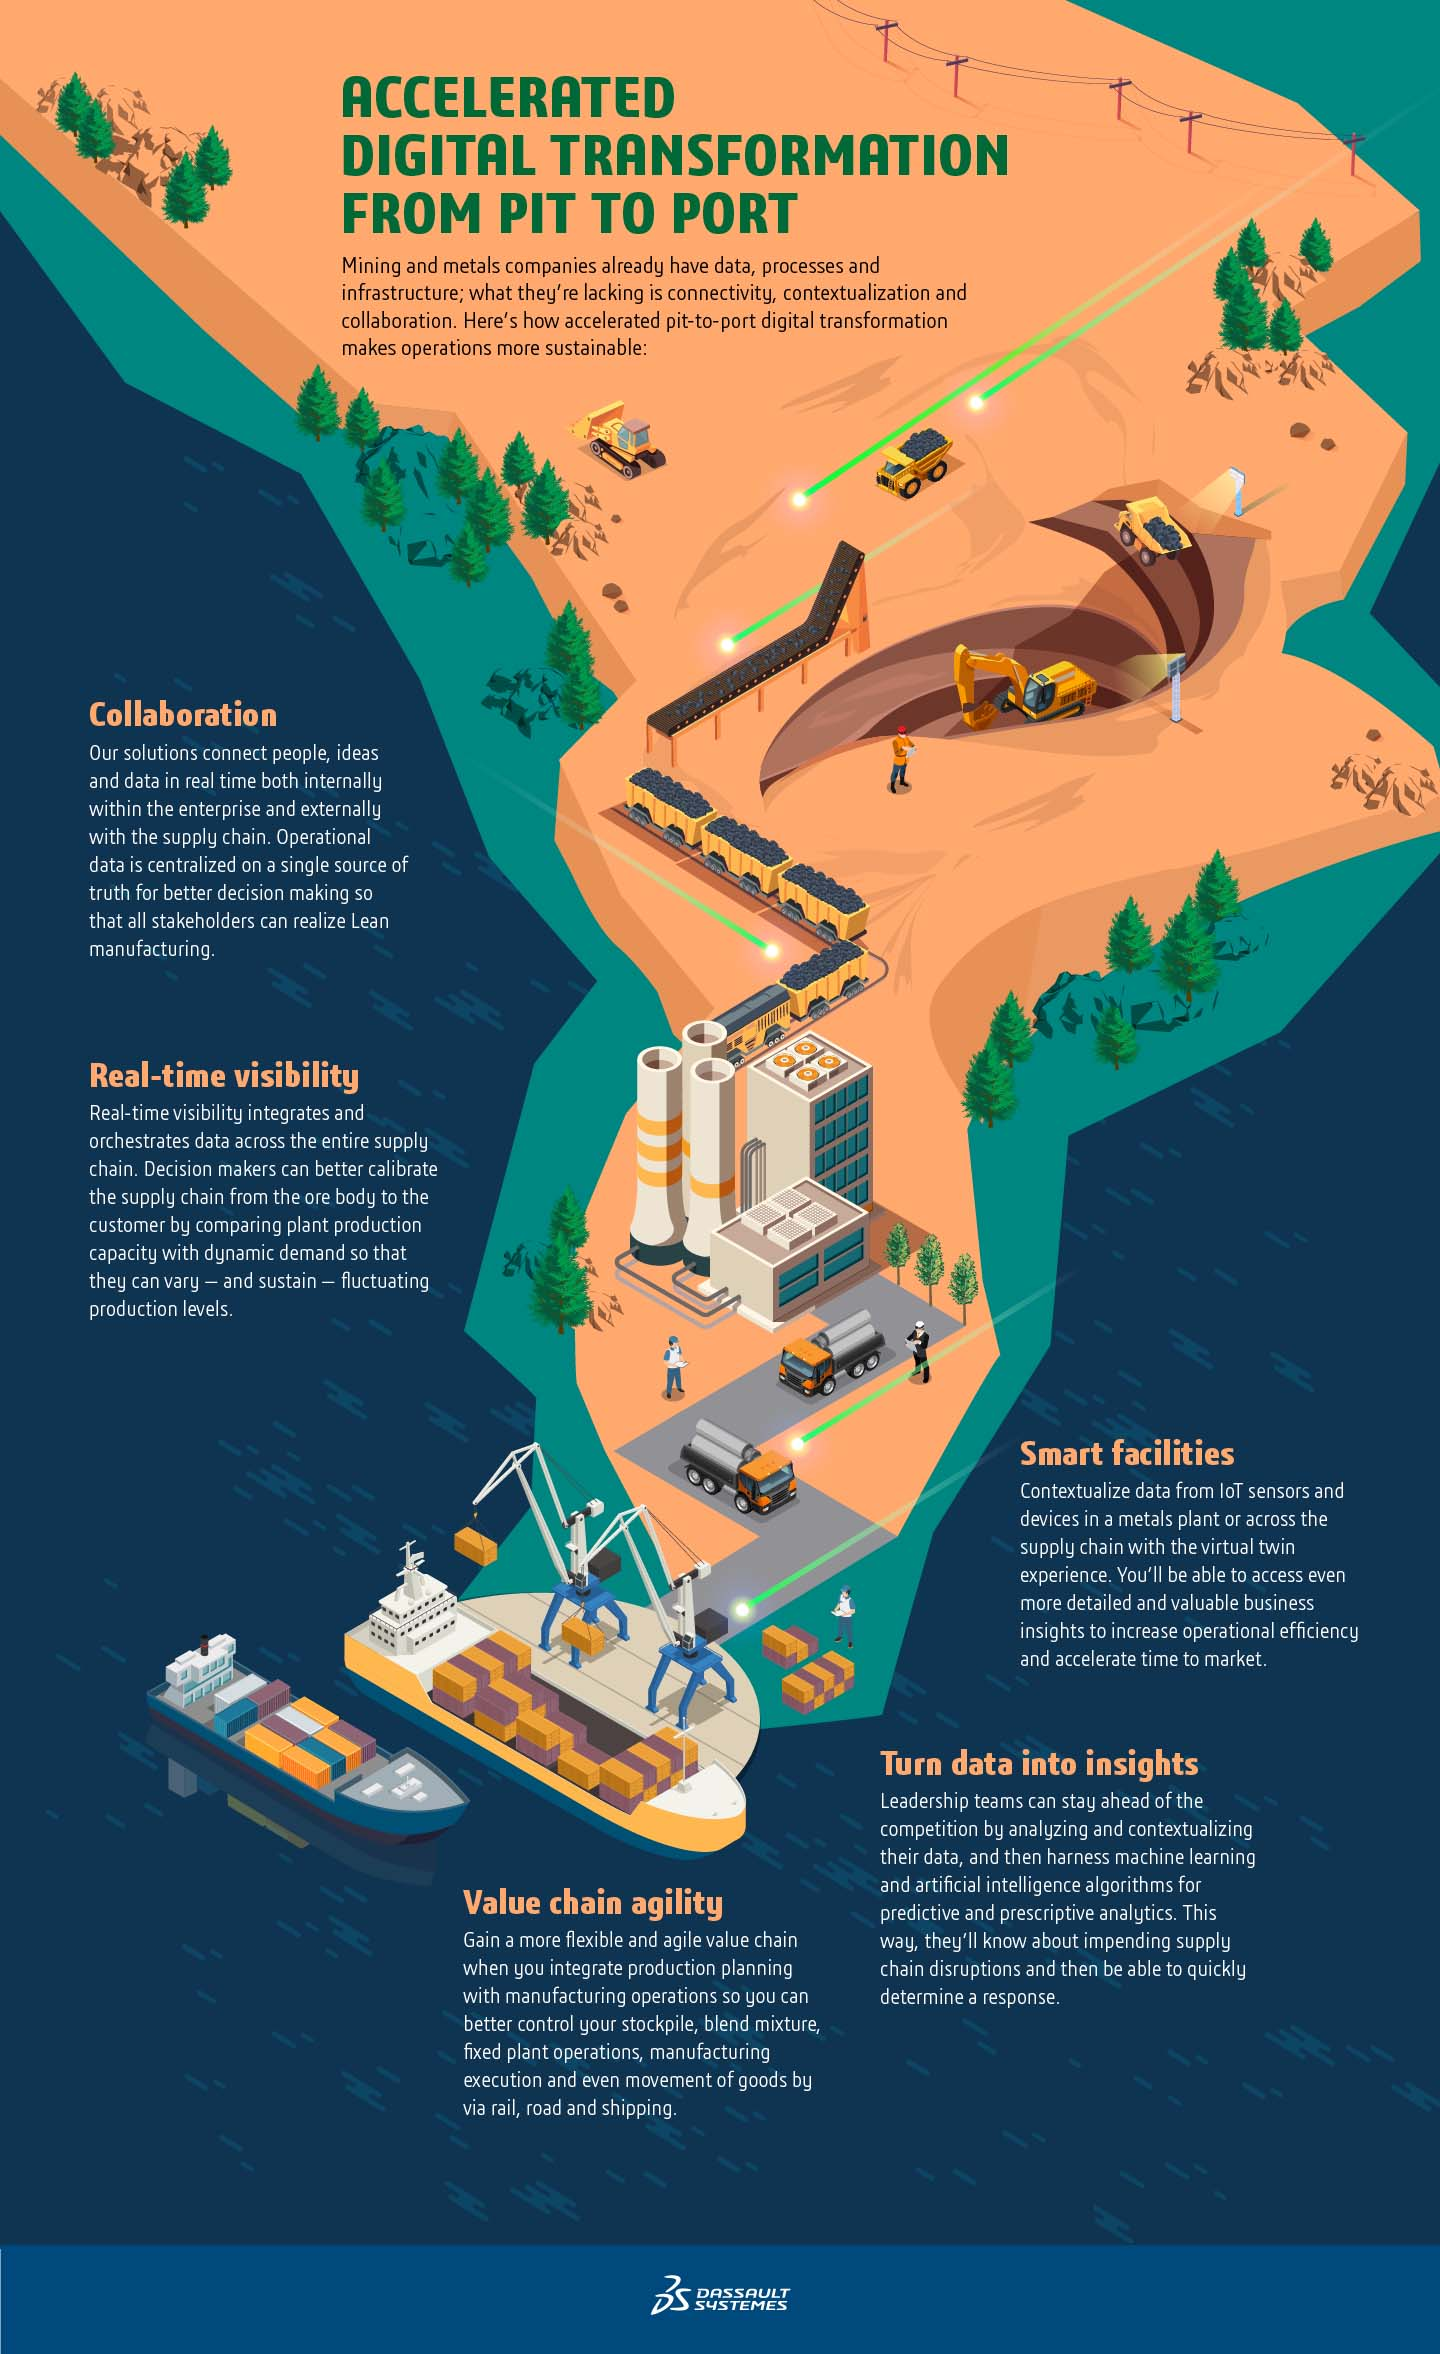 Accelerated Digital Transformation from Pit to Port Infographic > Desktop Image > Dassault Systèmes